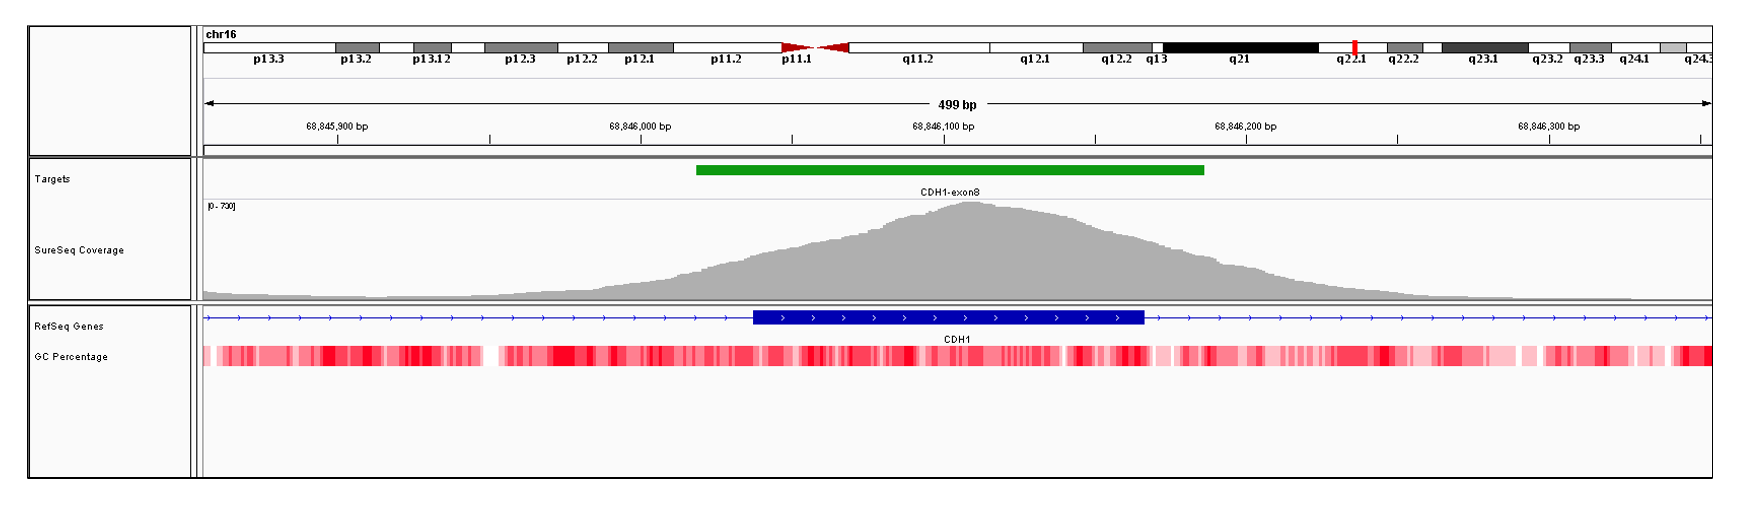 CDH1 Exon 8 (hg19 chr16:68846038-68846166). Depth of coverage per base (grey). Targeted region (green). Gene coding region as defined by RefSeq (blue). GC percentage (red). Image